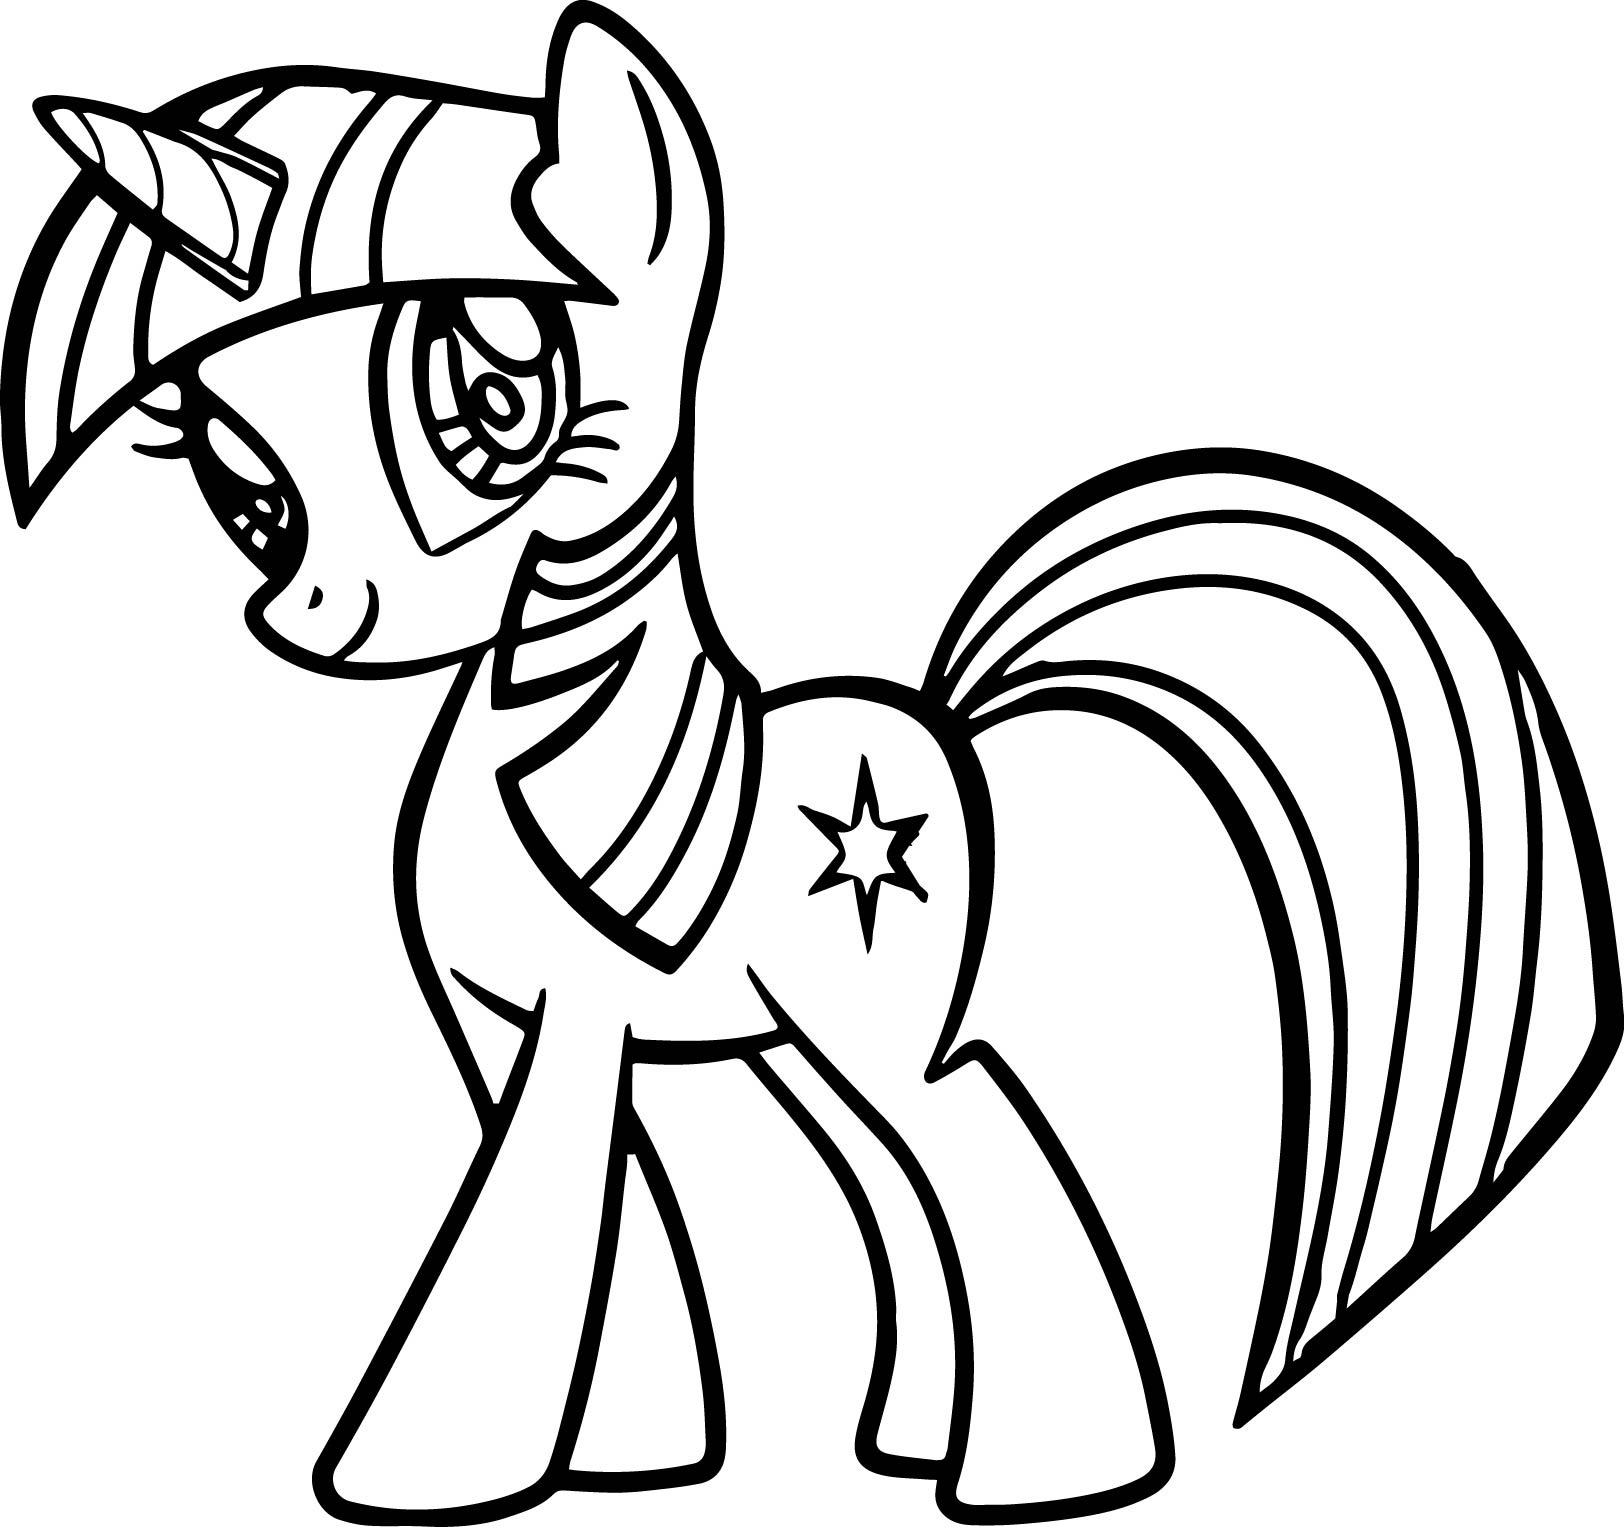 Twilight Sparkle Coloring Pages To Print at GetDrawings ...